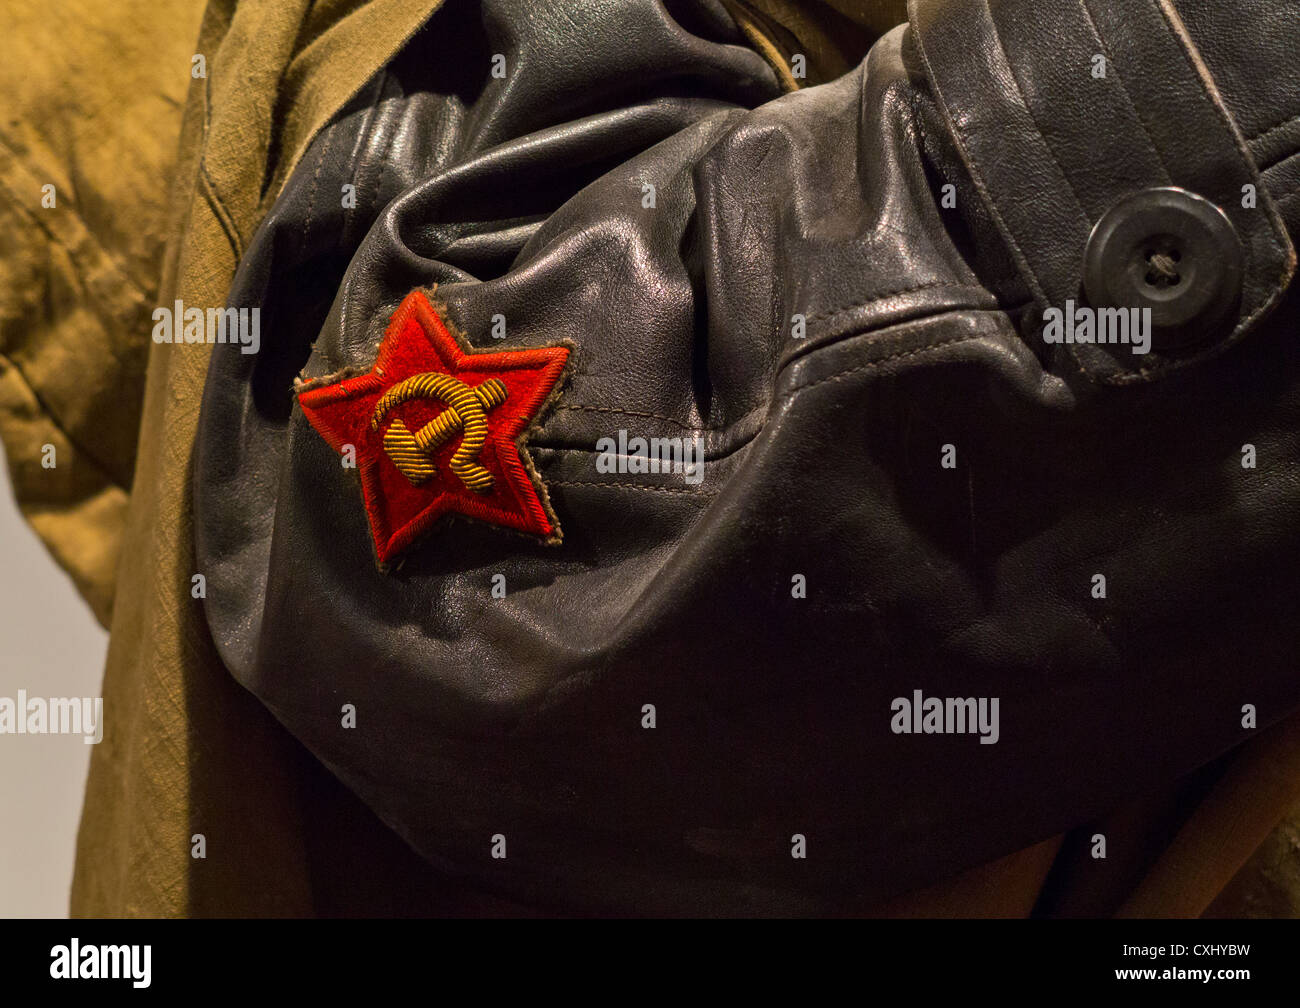 38e38a77f Hammer And Sickle Badge Stock Photos & Hammer And Sickle Badge Stock ...